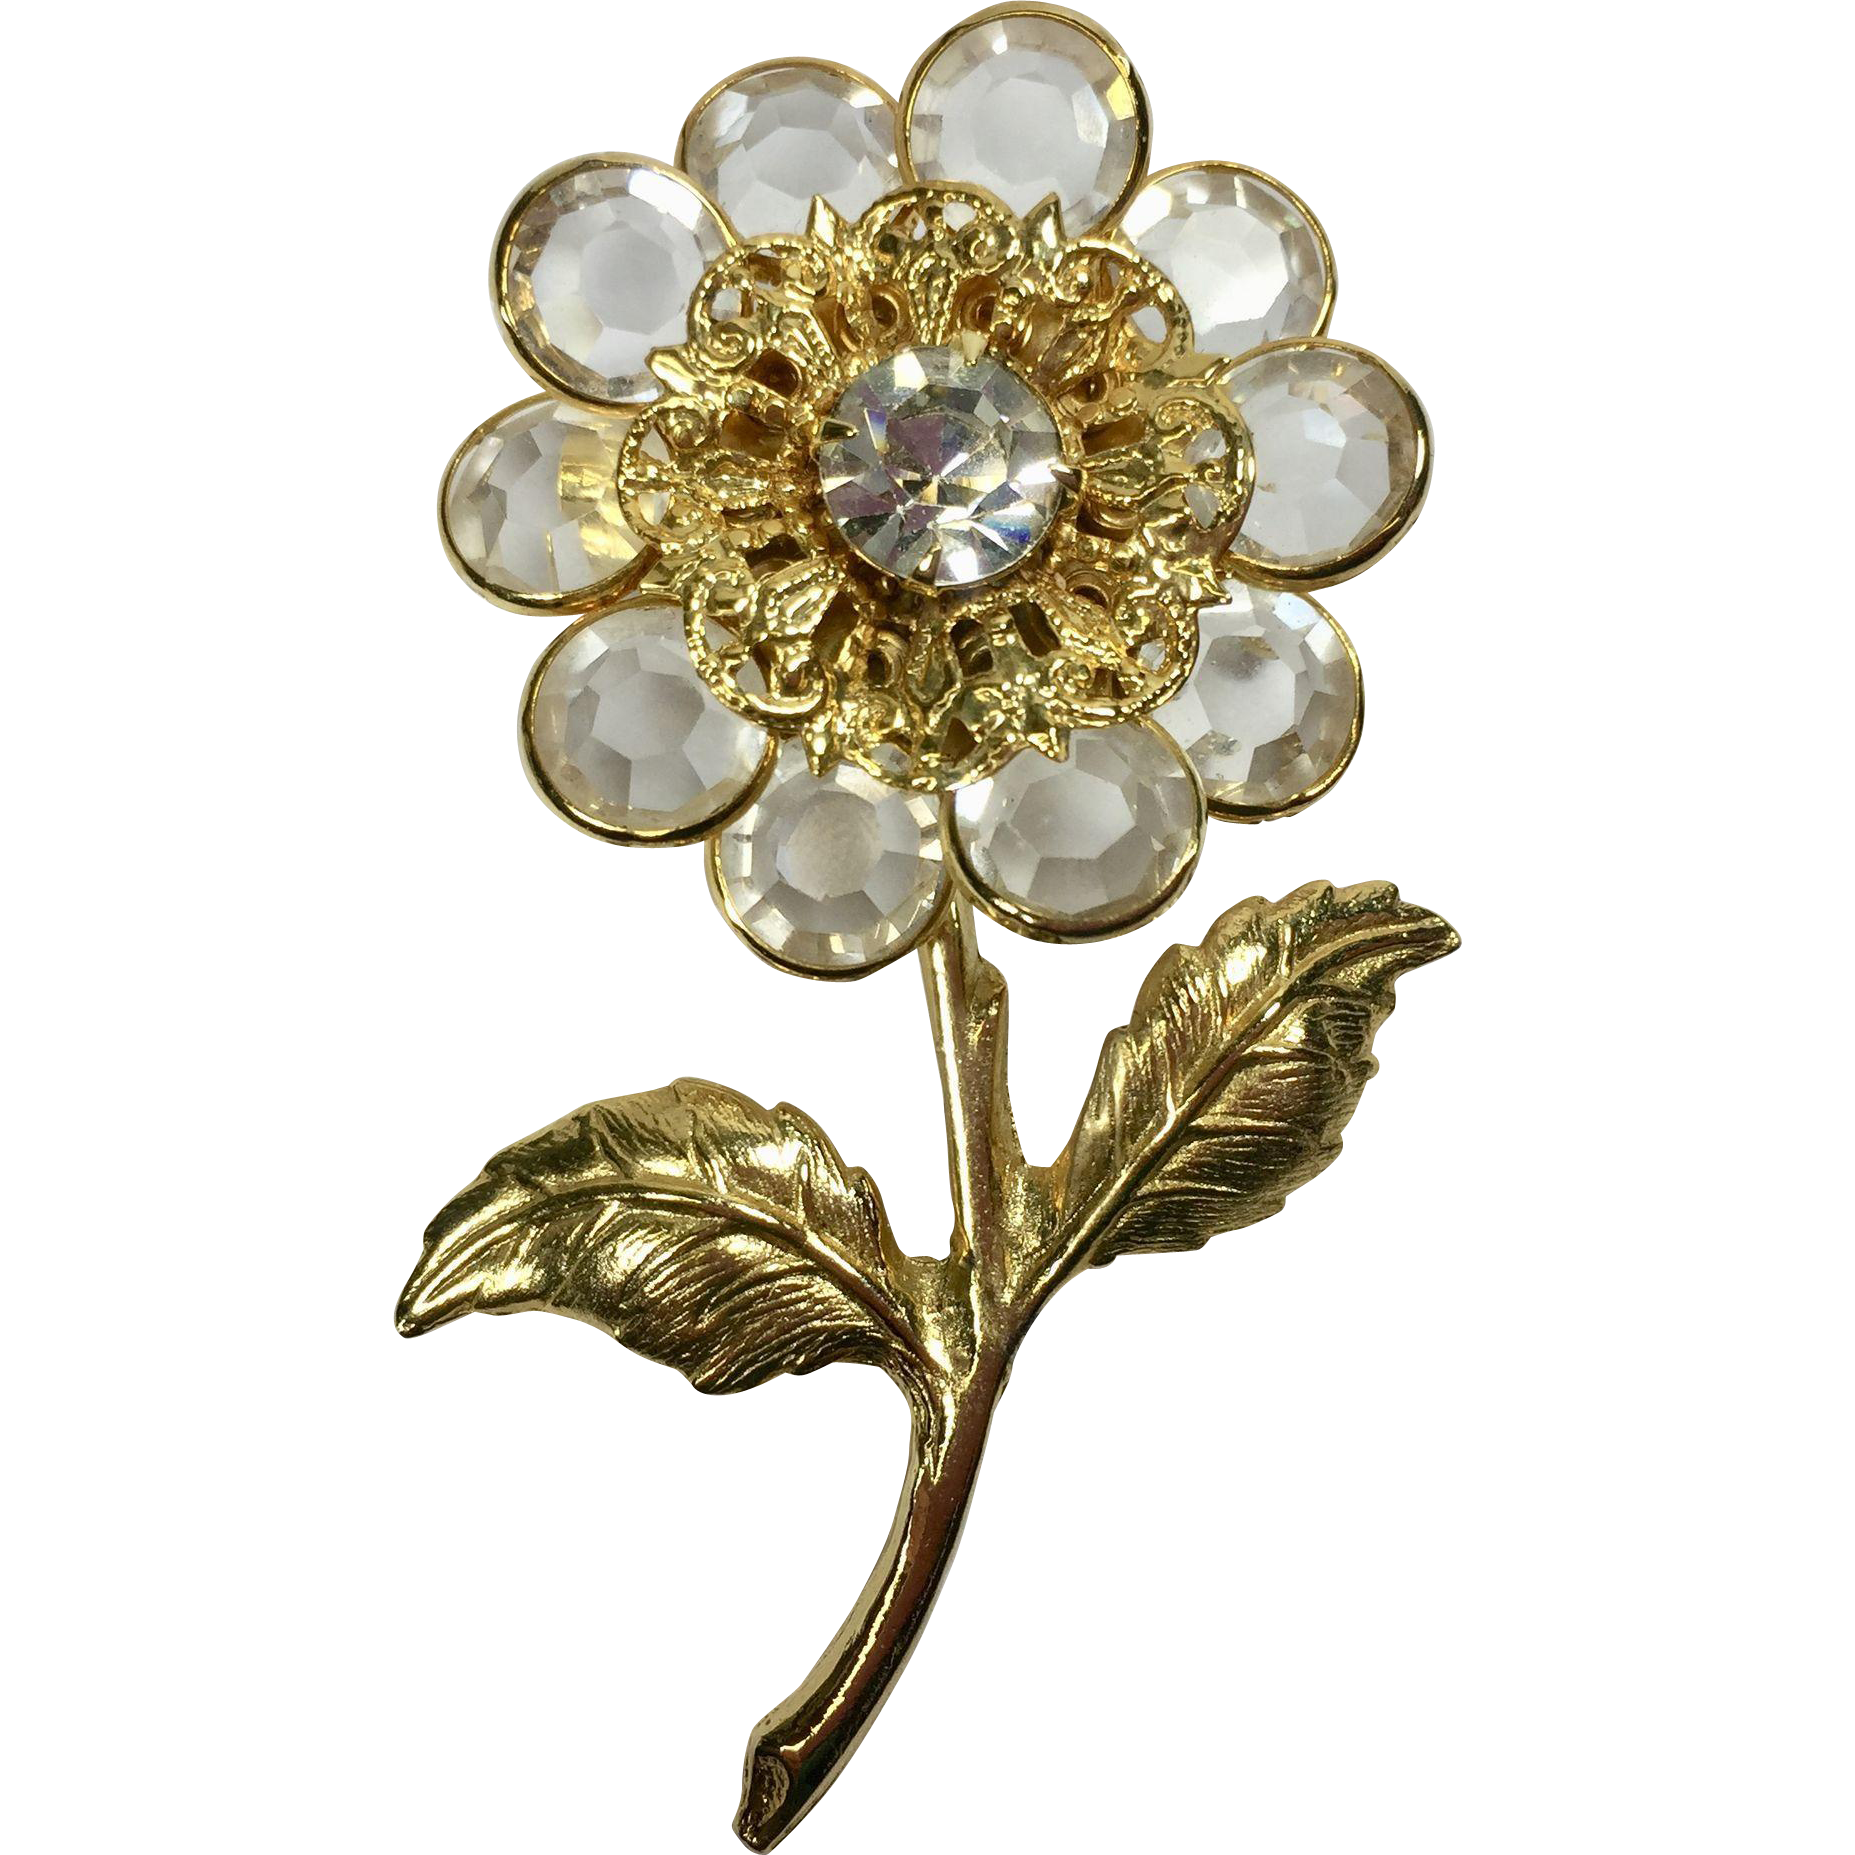 Vintage Crystal Bezel Flower Brooch w Filigree Setting